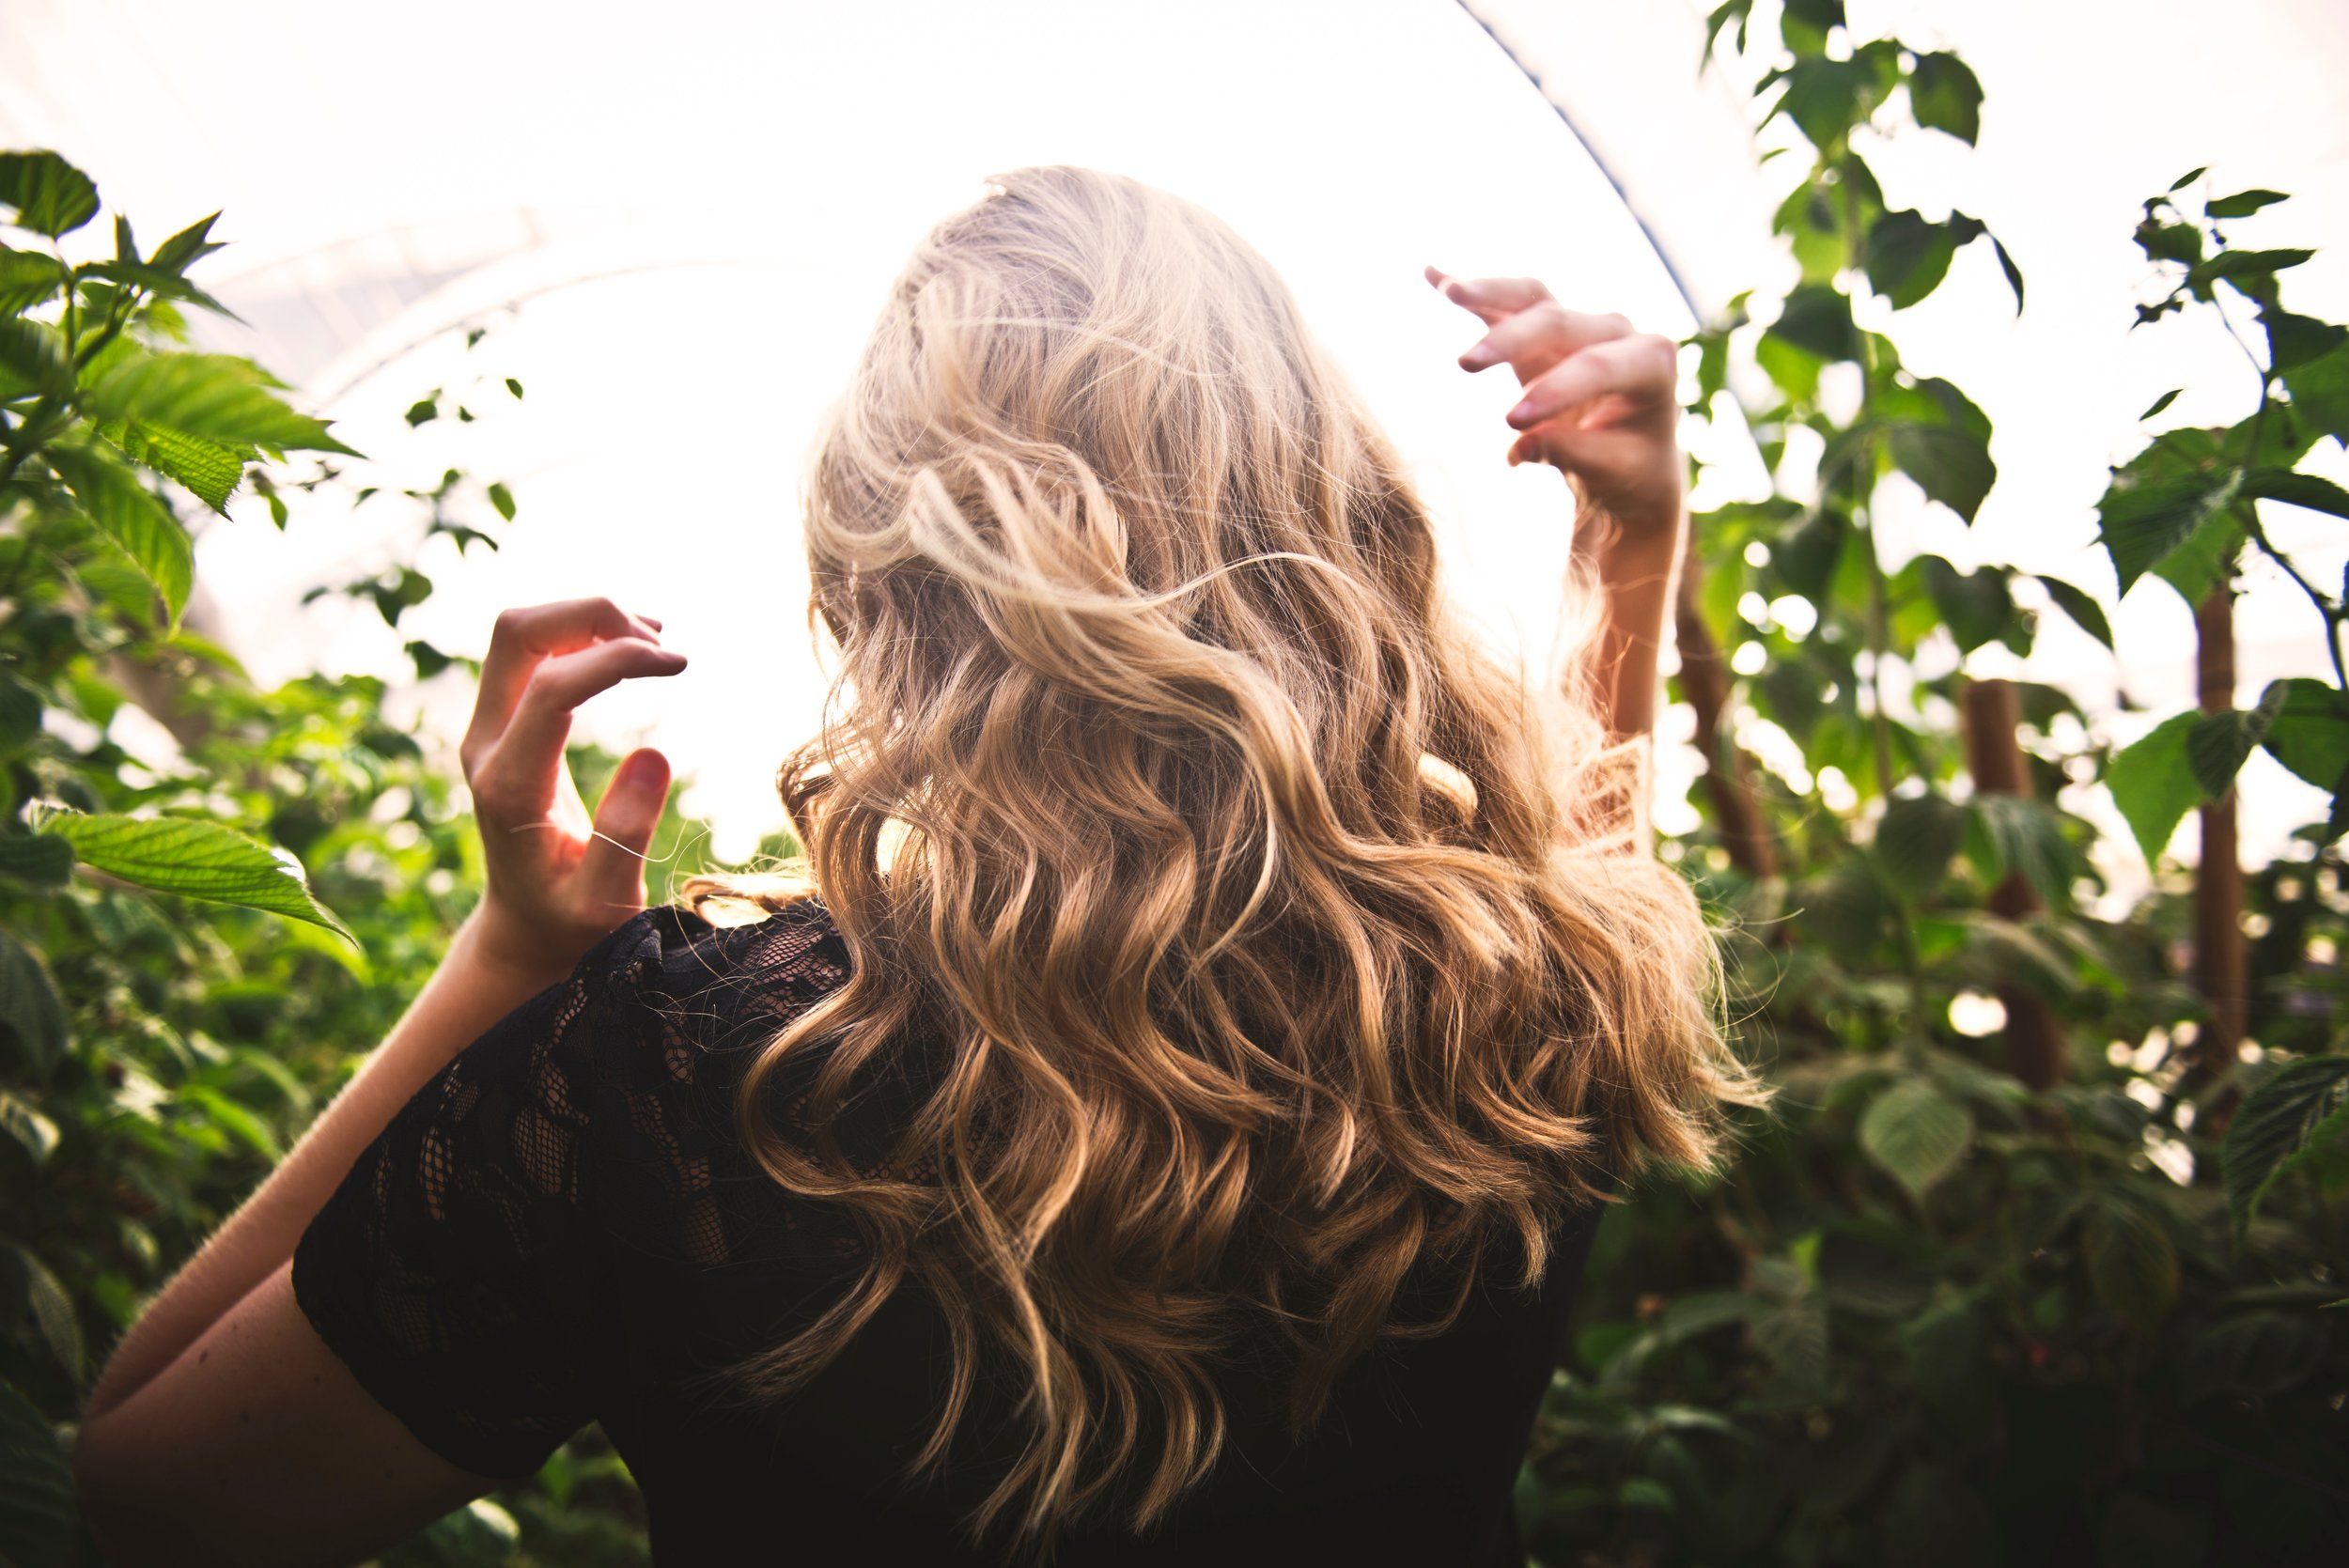 Our talented teamof creative, professional stylists' reward is providing personalized services that leave you joyfully renewed. -